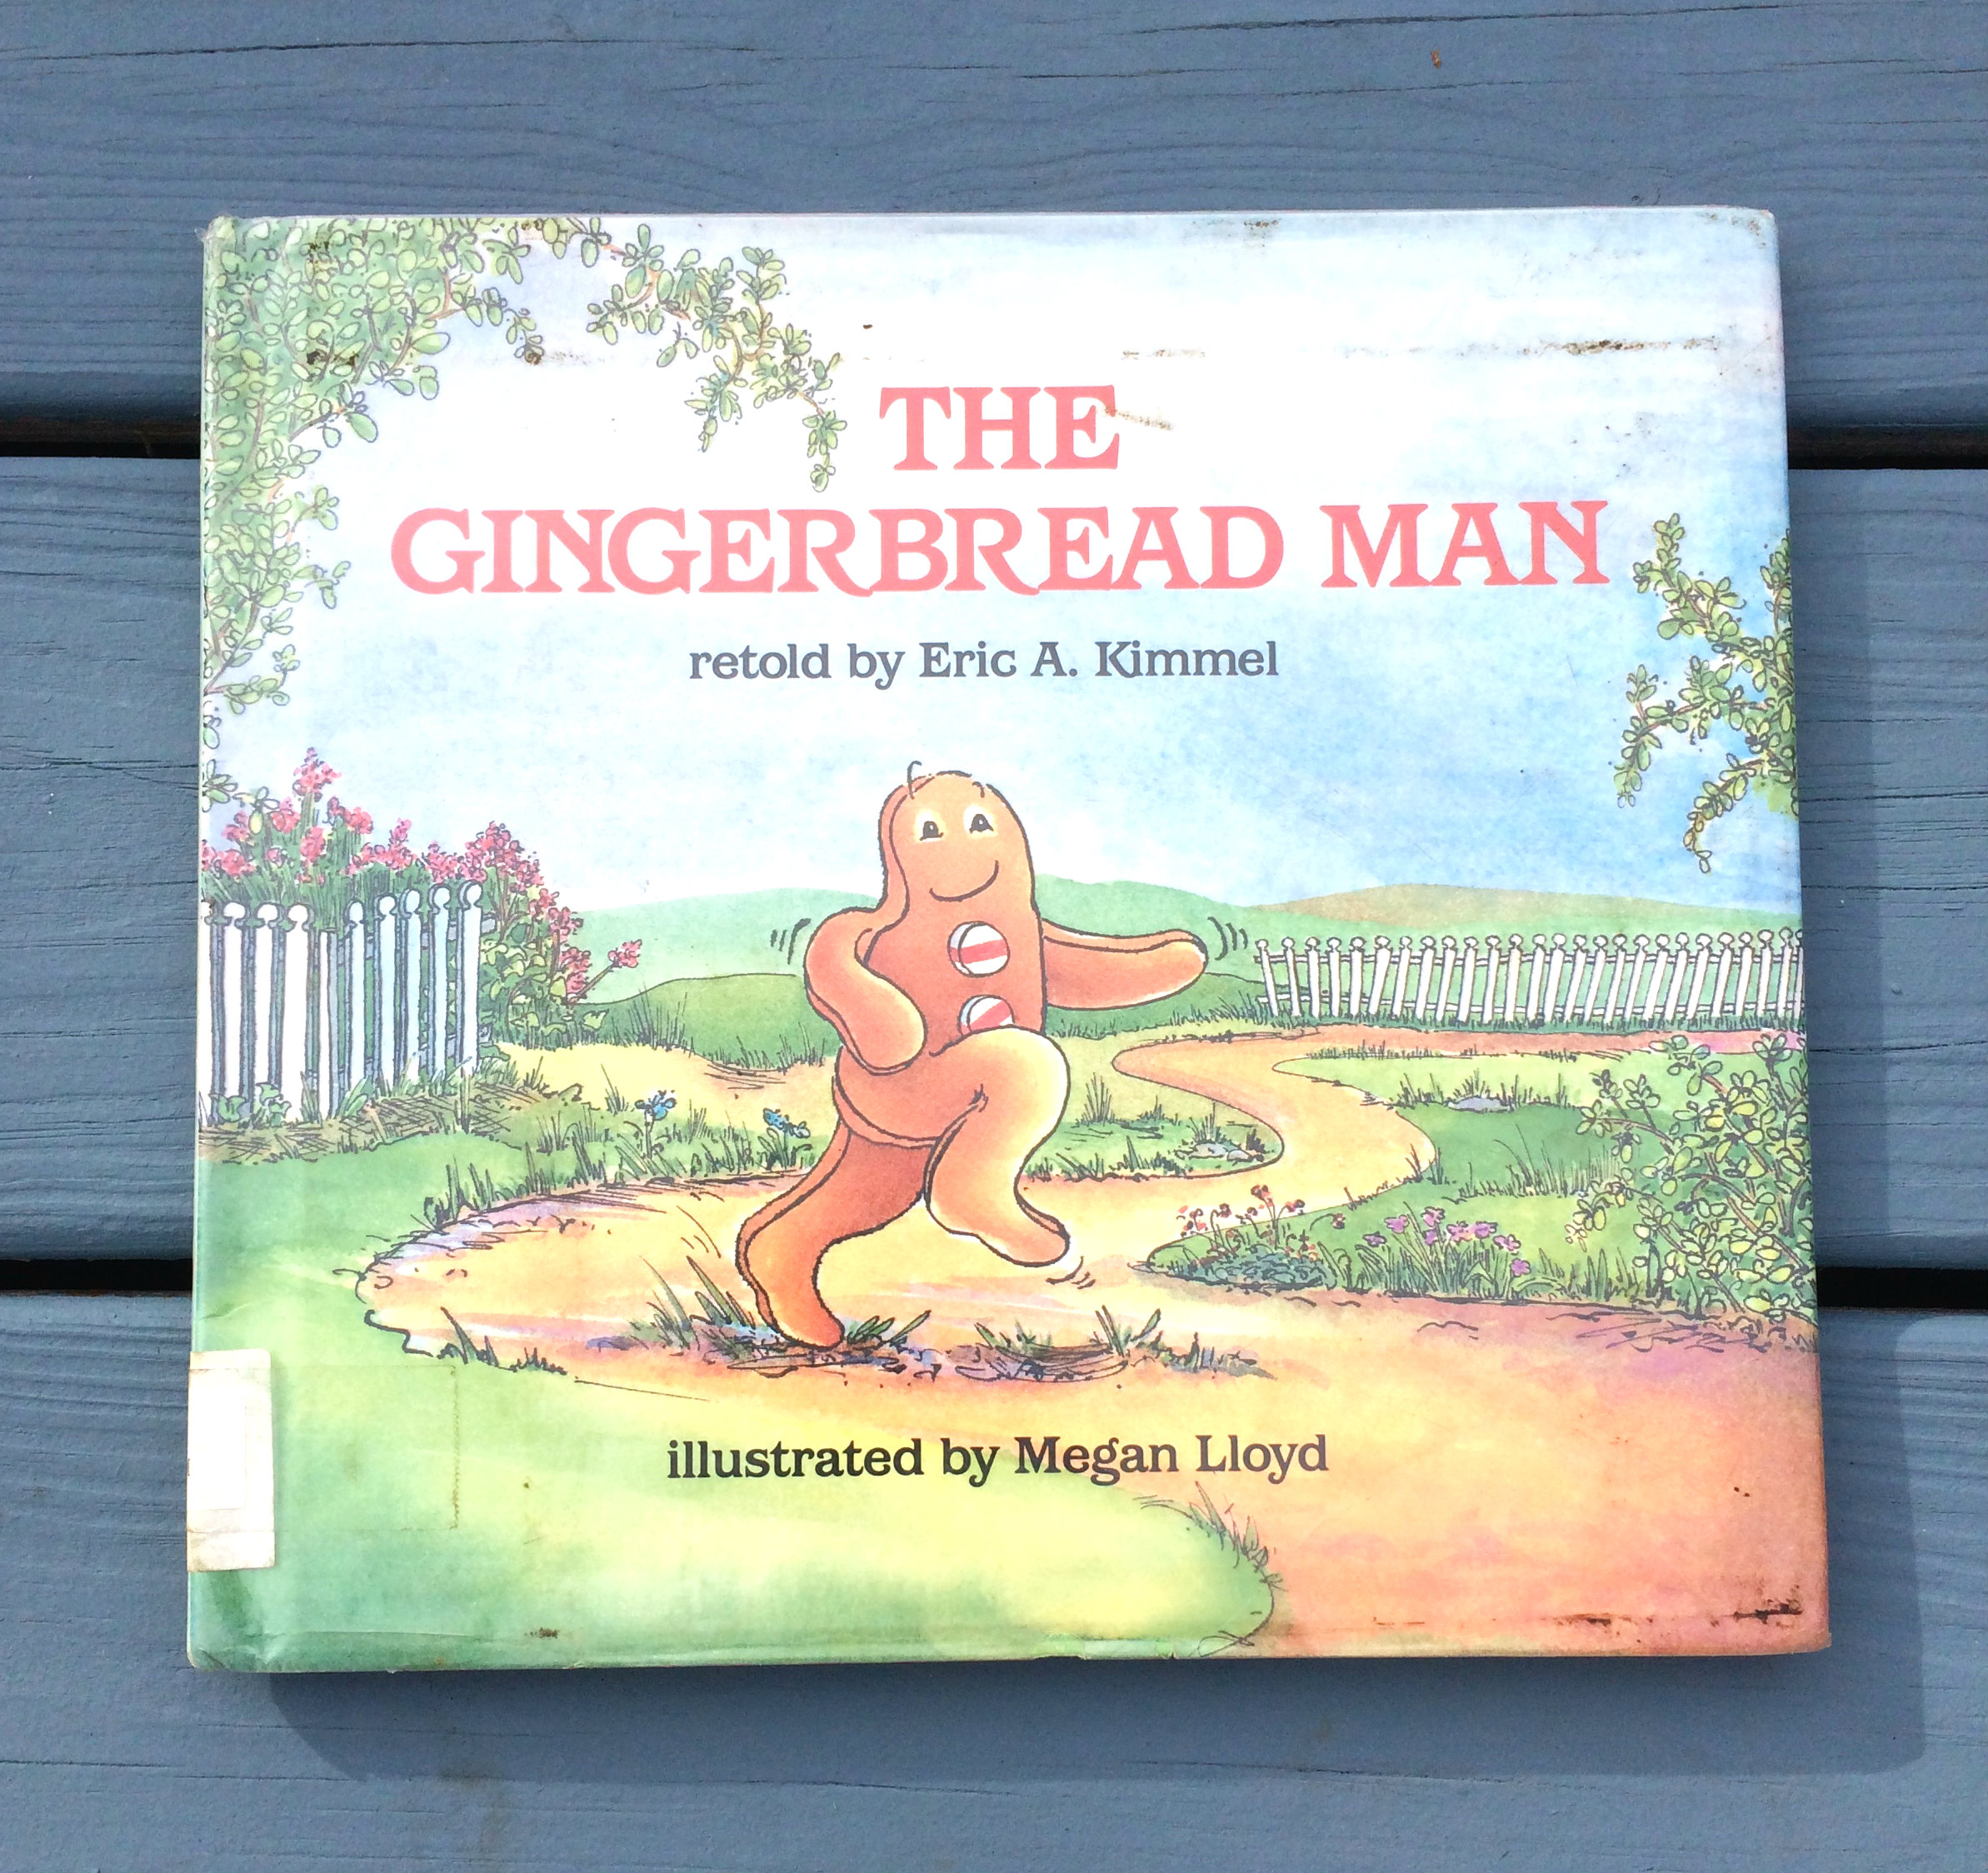 The Gingerbread Man edited.jpg